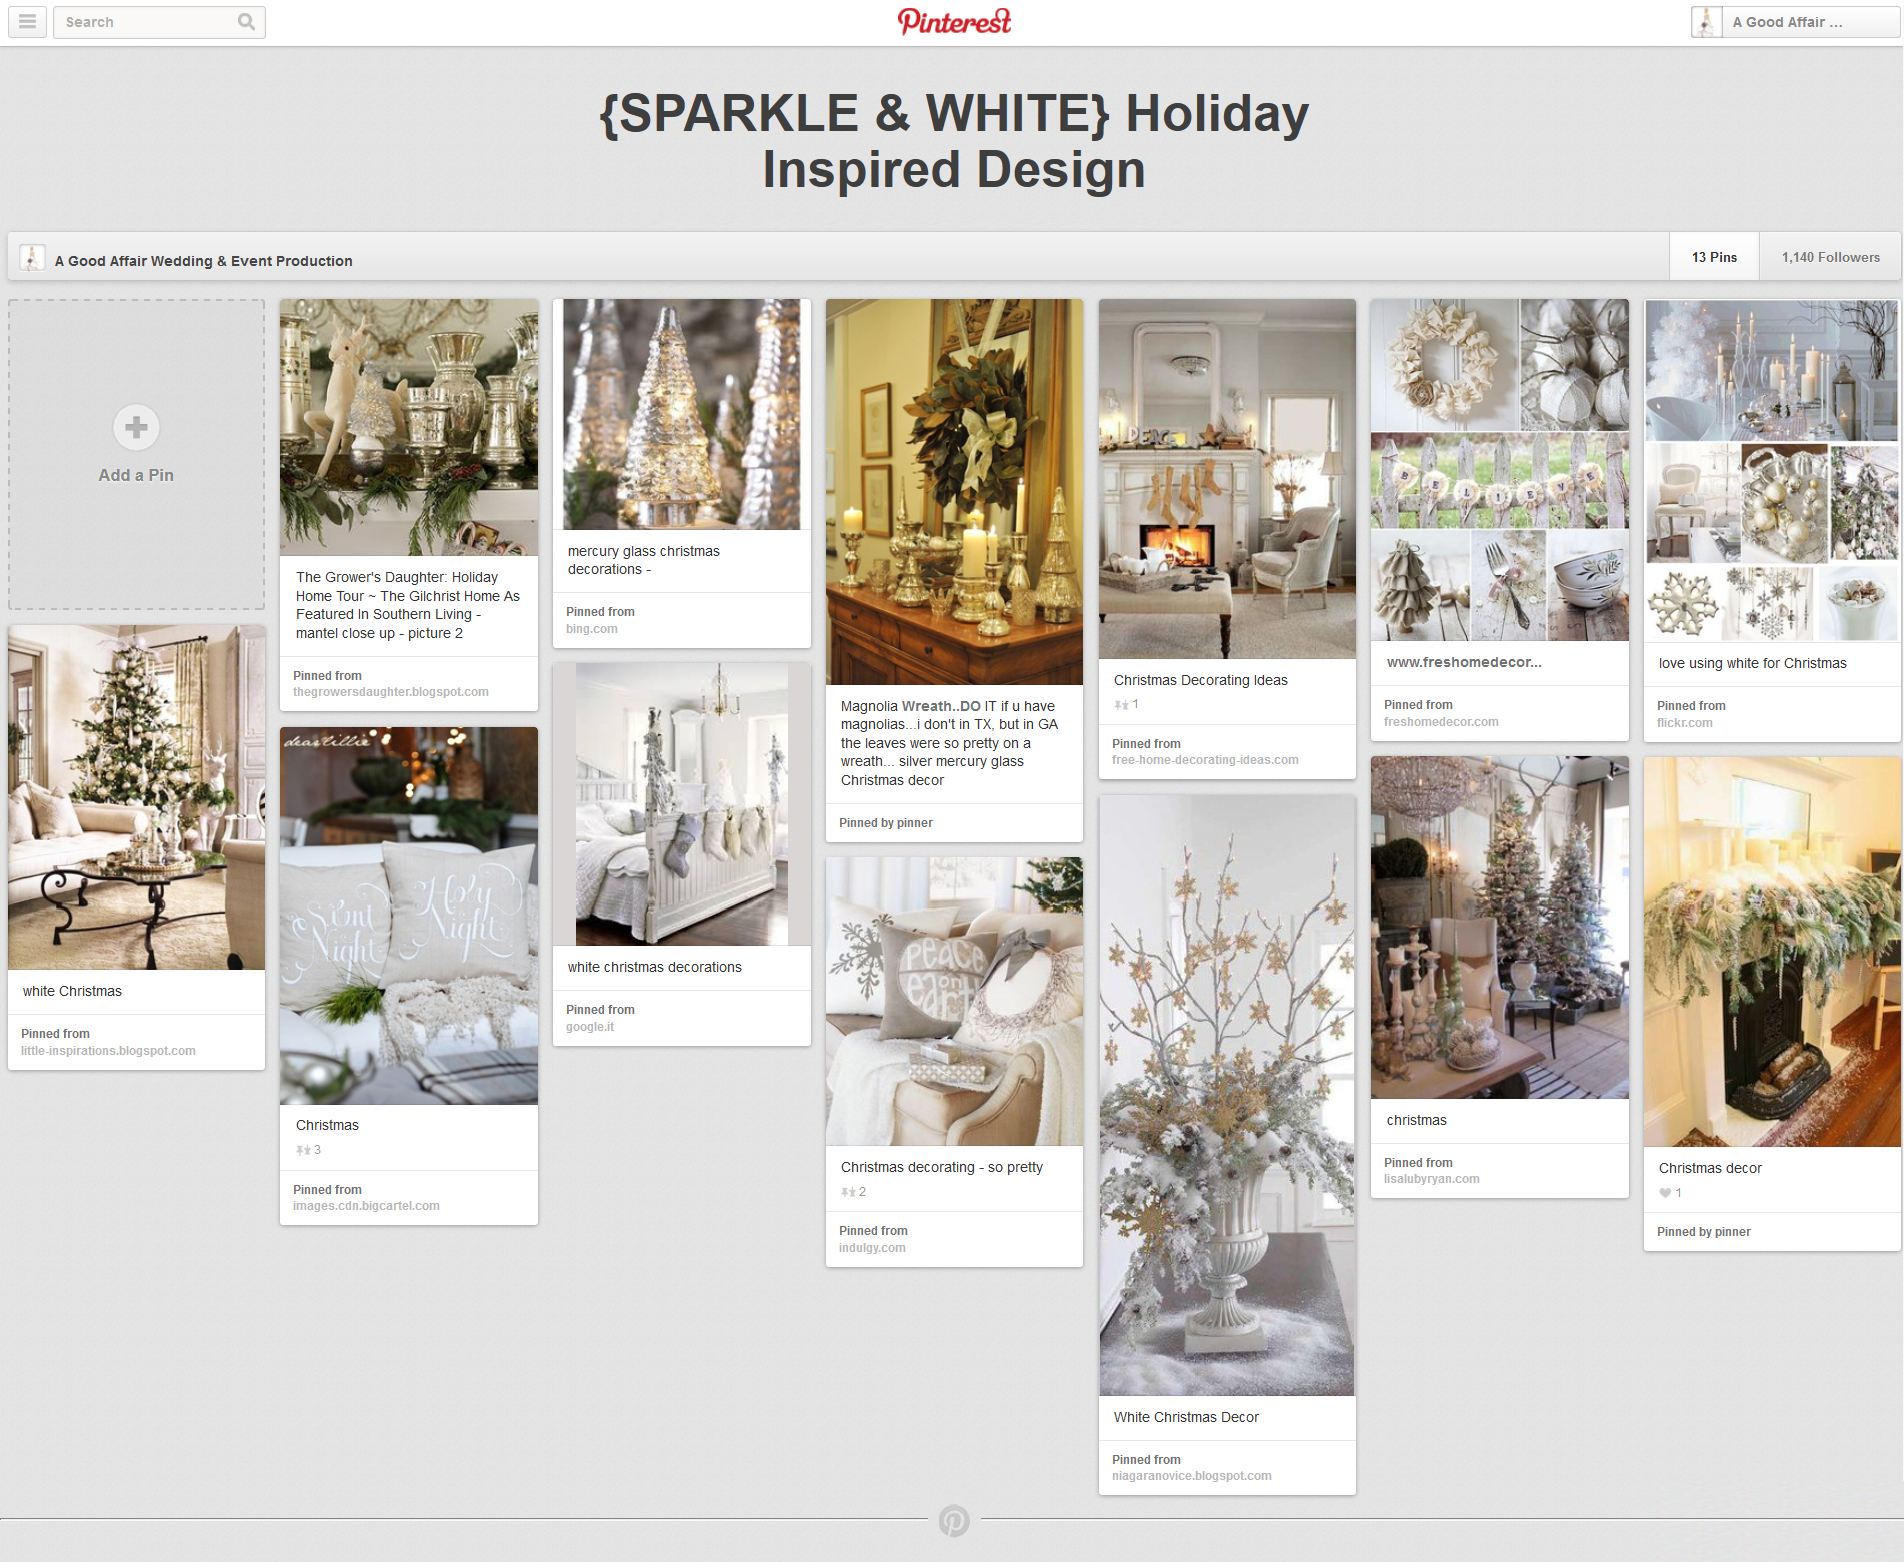 Holiday Inspiration, Sparkle and White Holiday decor, A Good Affair Wedding & Event Production